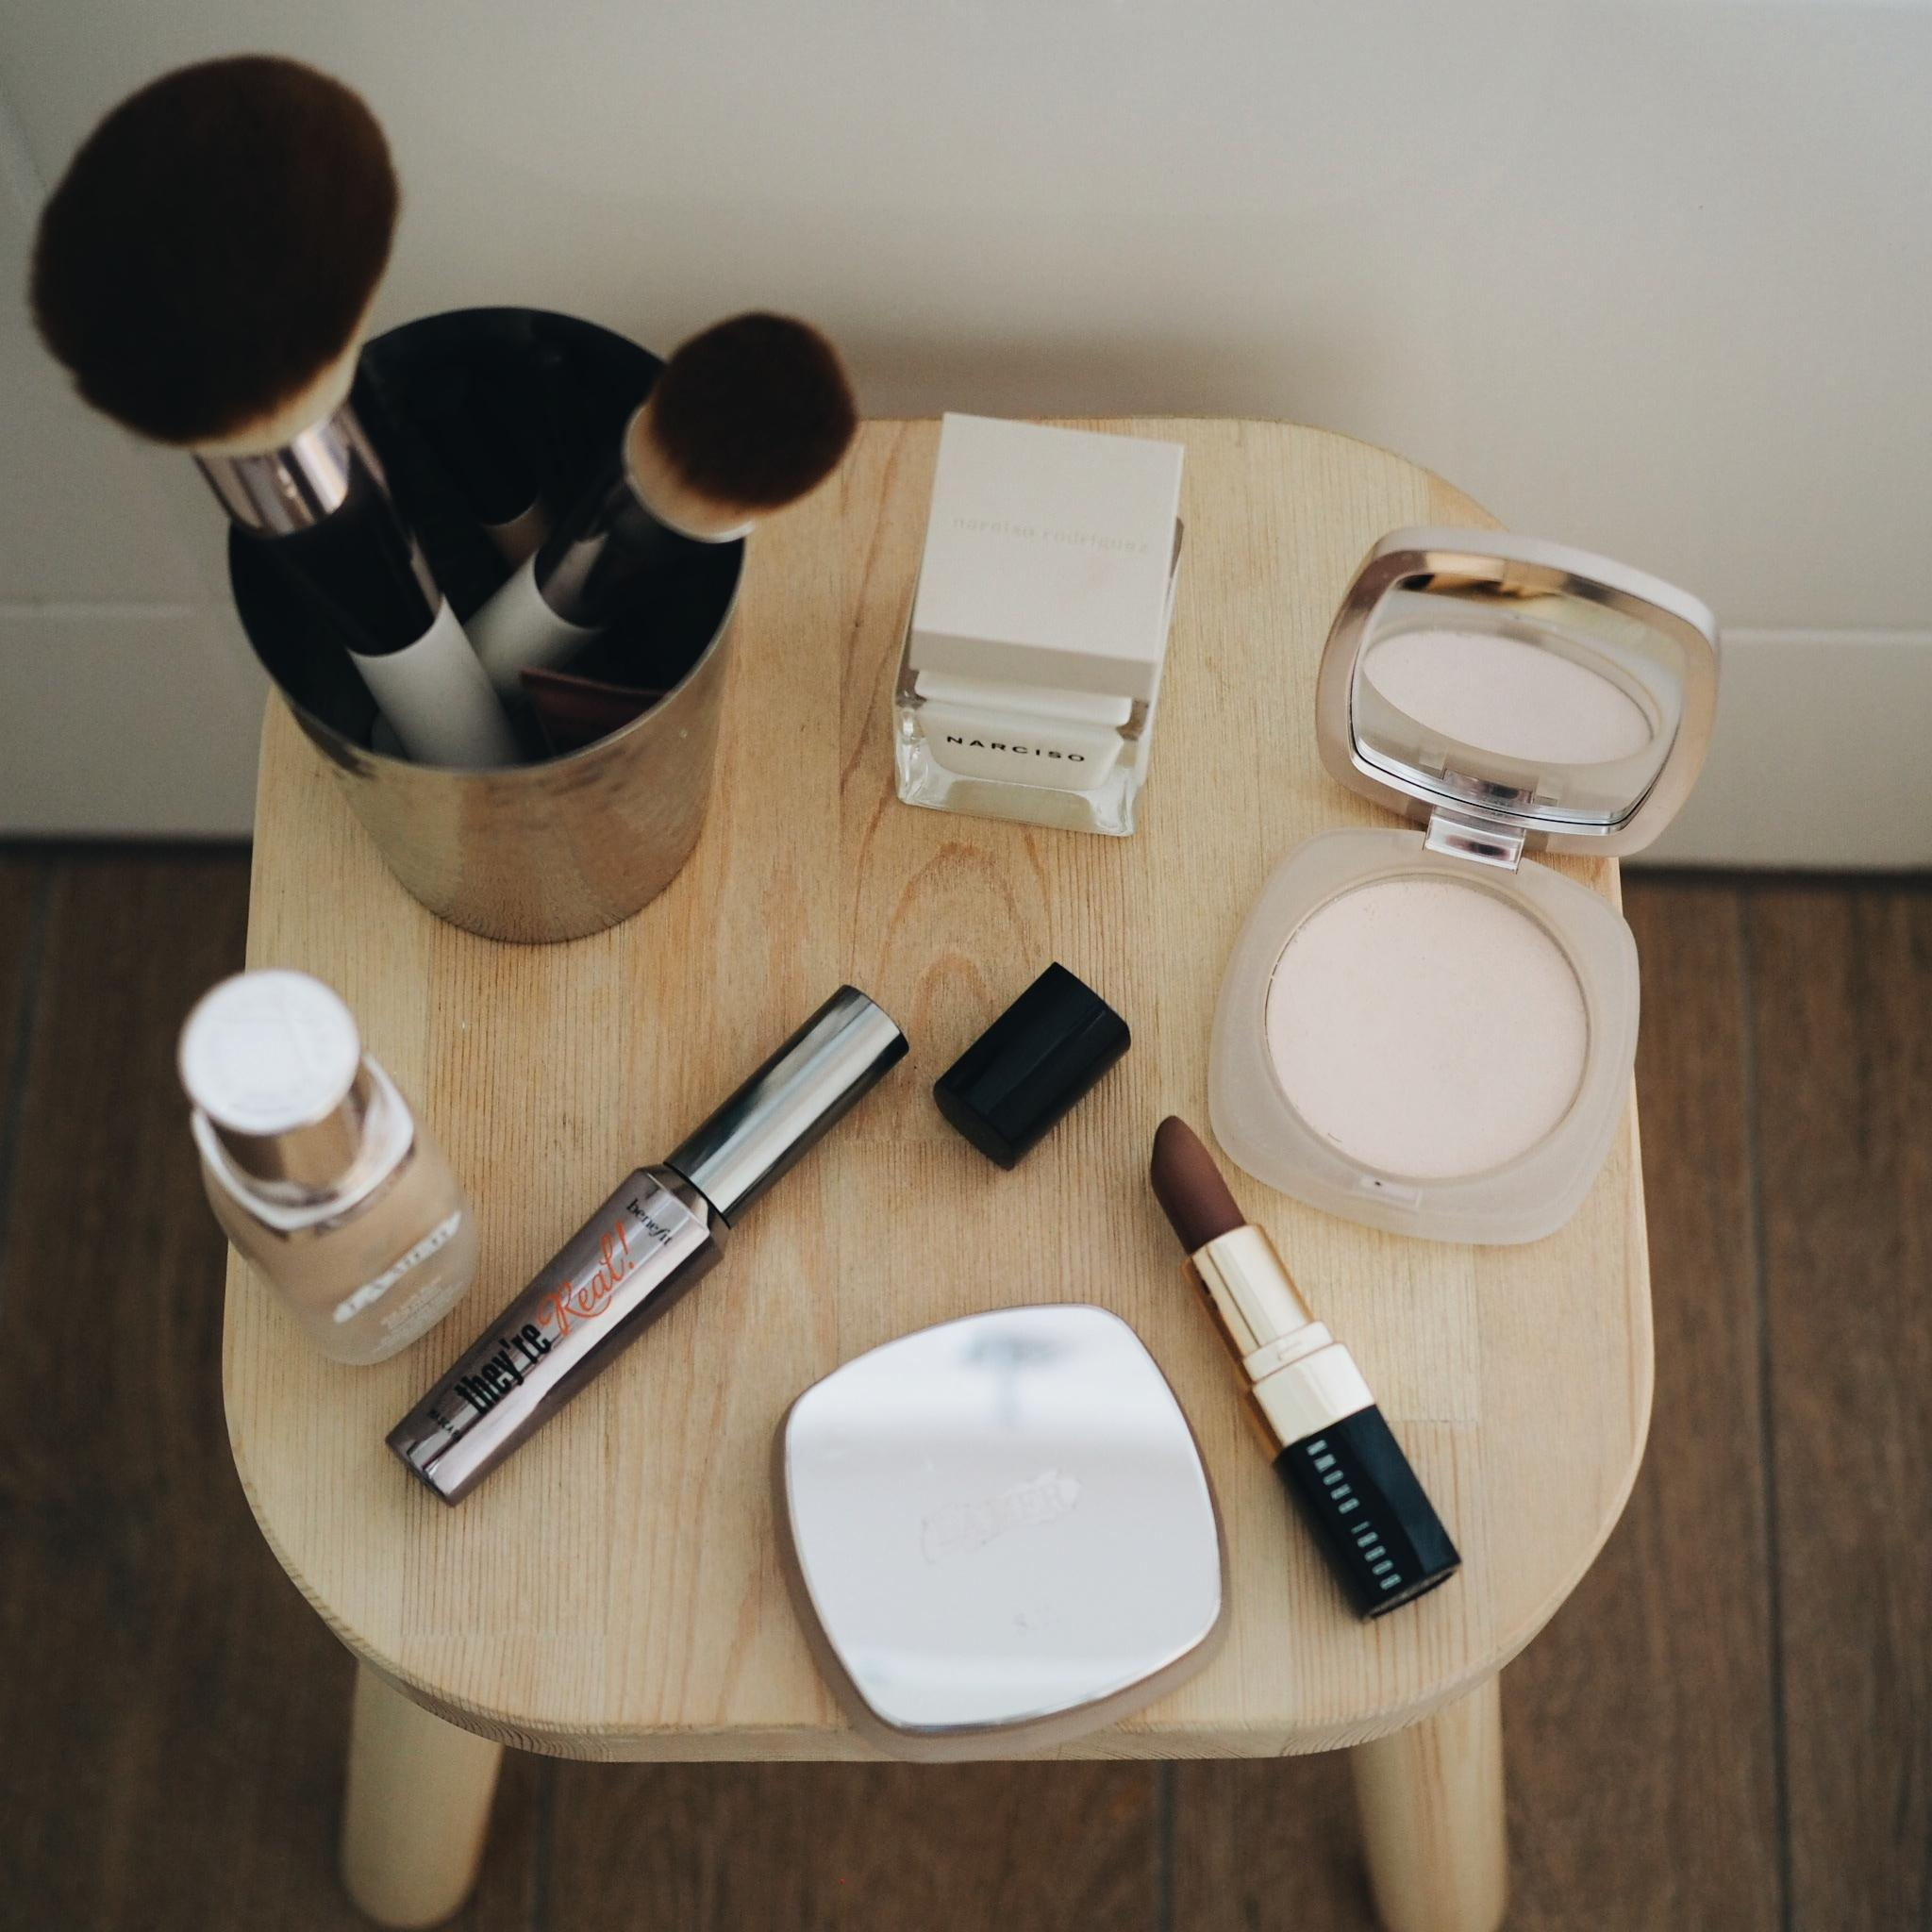 Meine Favoriten für den perfekten #teint #beautychallenge #makeup ##foundation